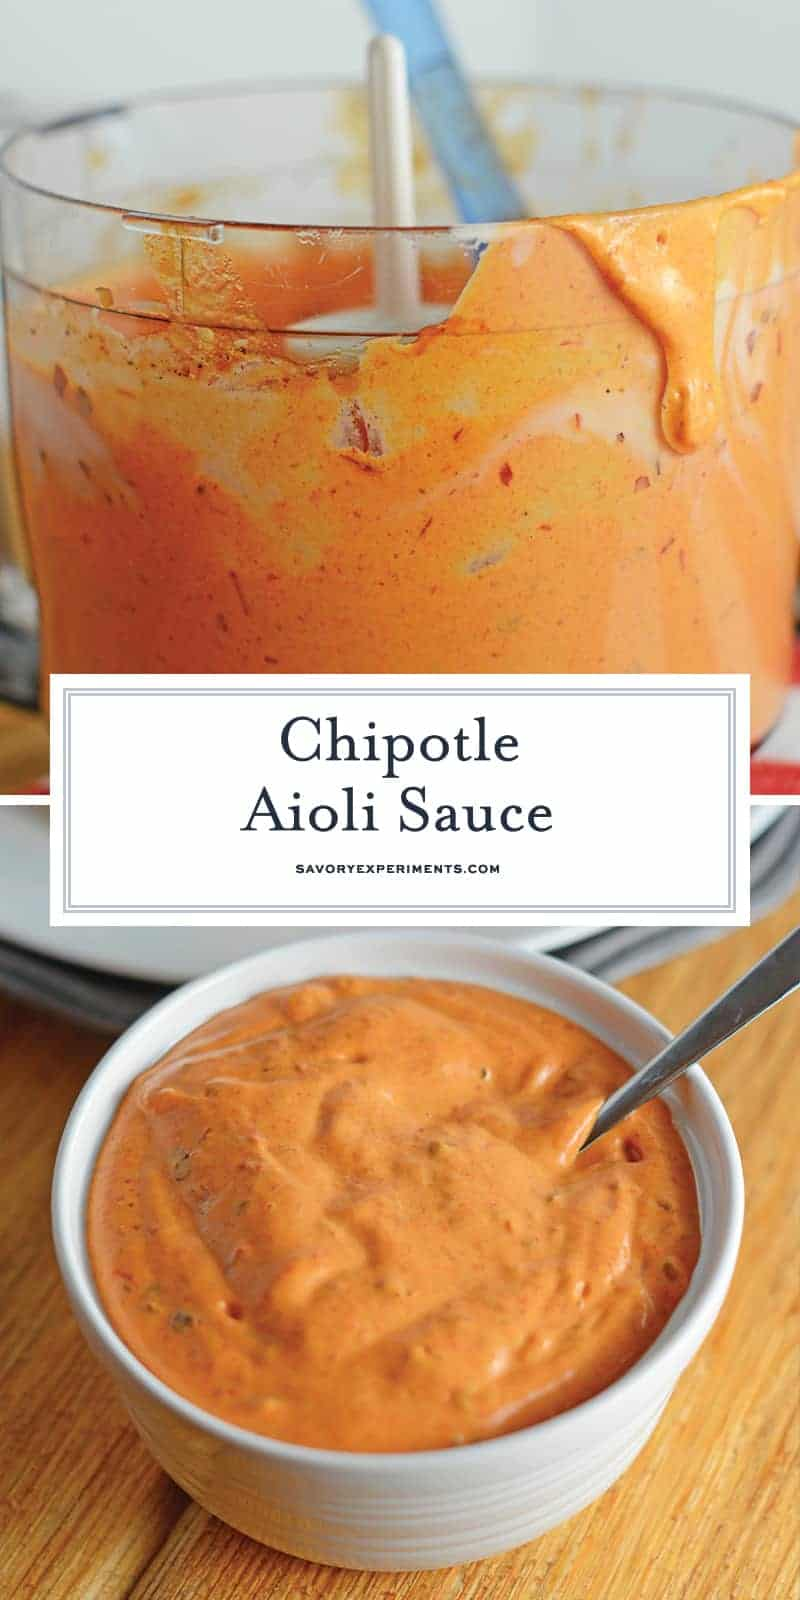 Creamy Chipotle Aioli is a quick and zesty sauce perfect for dipping or spreading on sandwiches. An easy sauce perfect for any meal! #aiolirecipe #chipotleaioli www.savoryexperiments.com